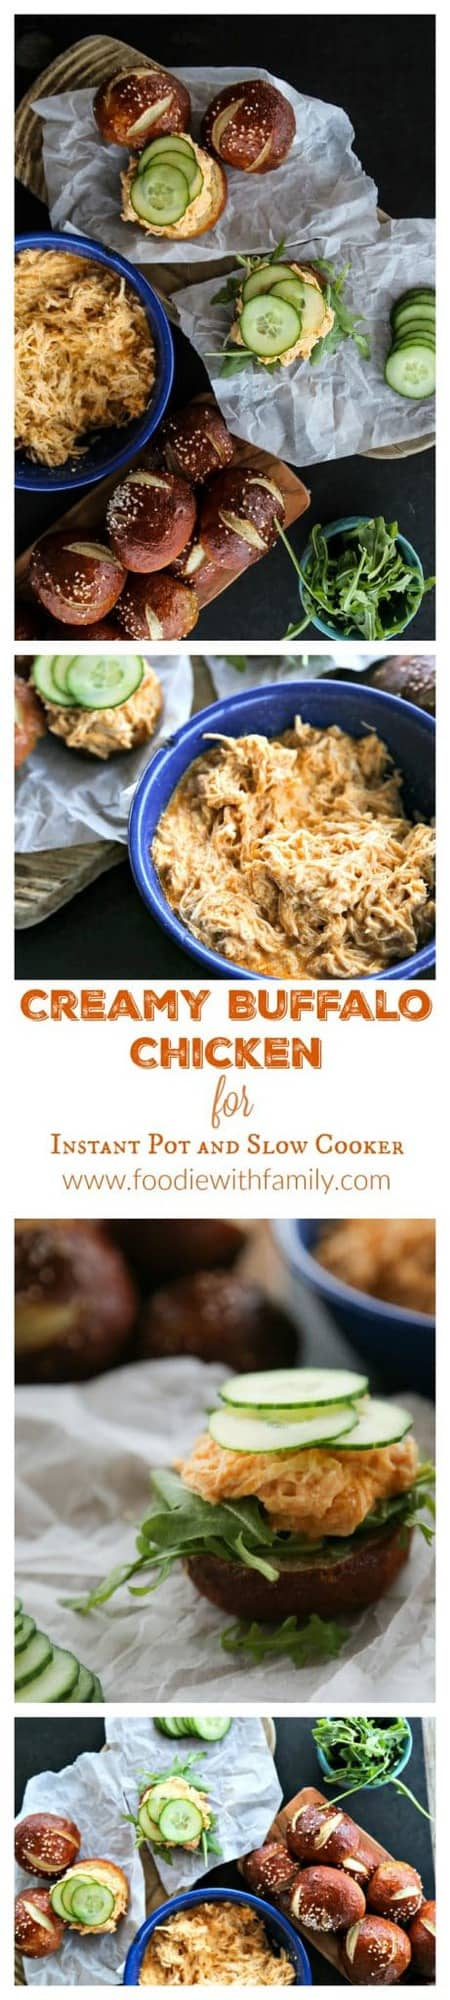 Three ingredients are all it takes to make the most incredibly flavourful Creamy Buffalo Chicken for Instant Pot or Slow Cooker.